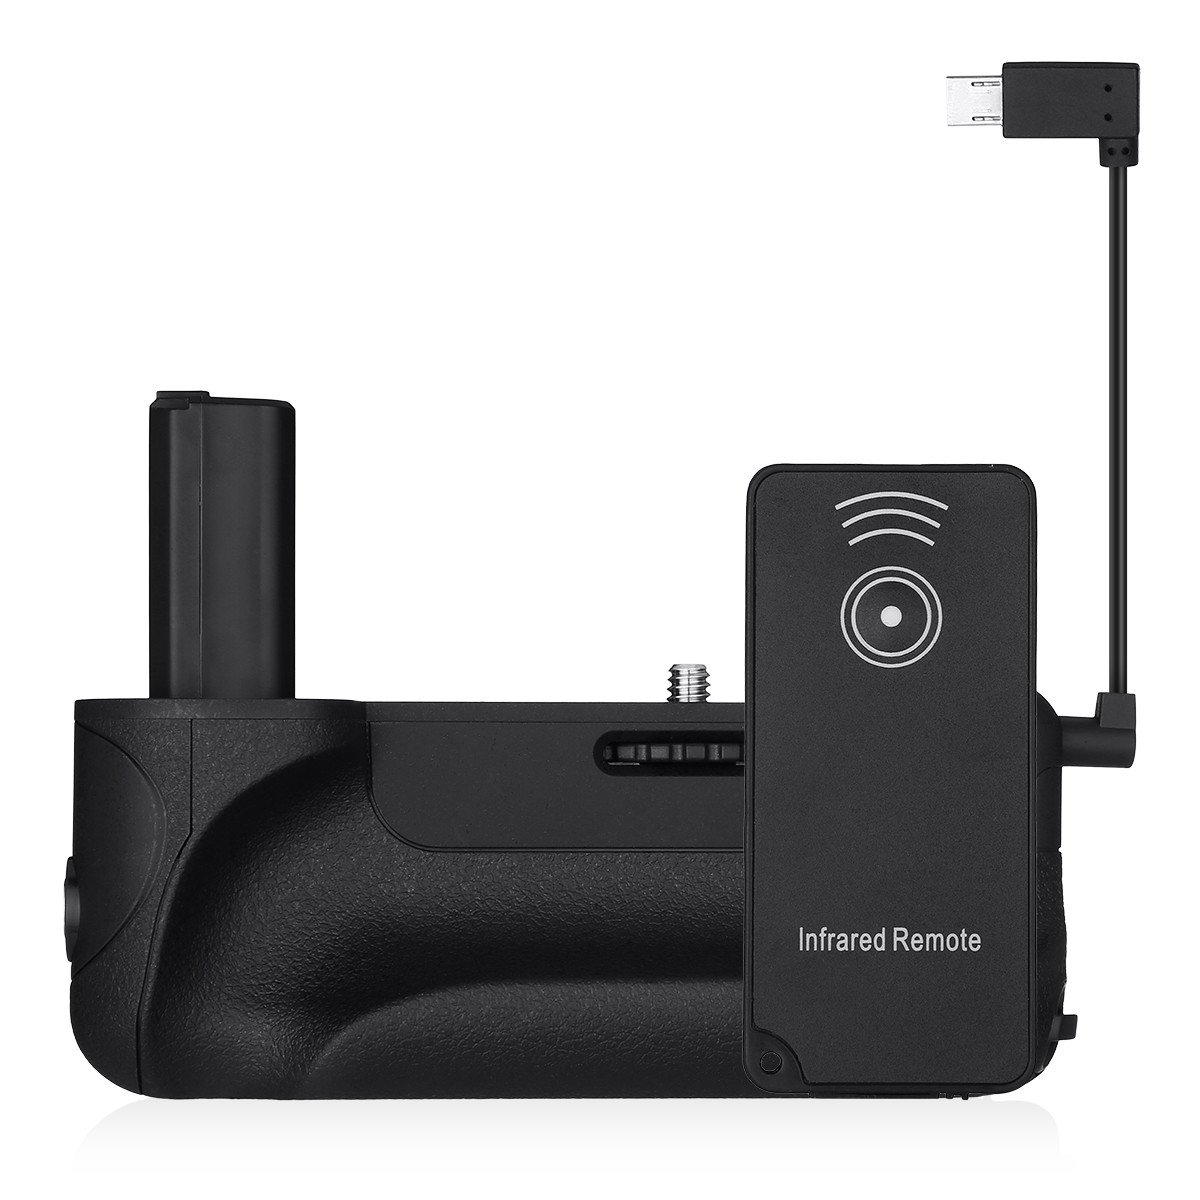 Powerextra 2.4G Pro Battery Grip With 2.4G Wireless Remote Control Replacement for Sony Alpha A6500 Mirrorless Camera Work With NP-FW50 Battery